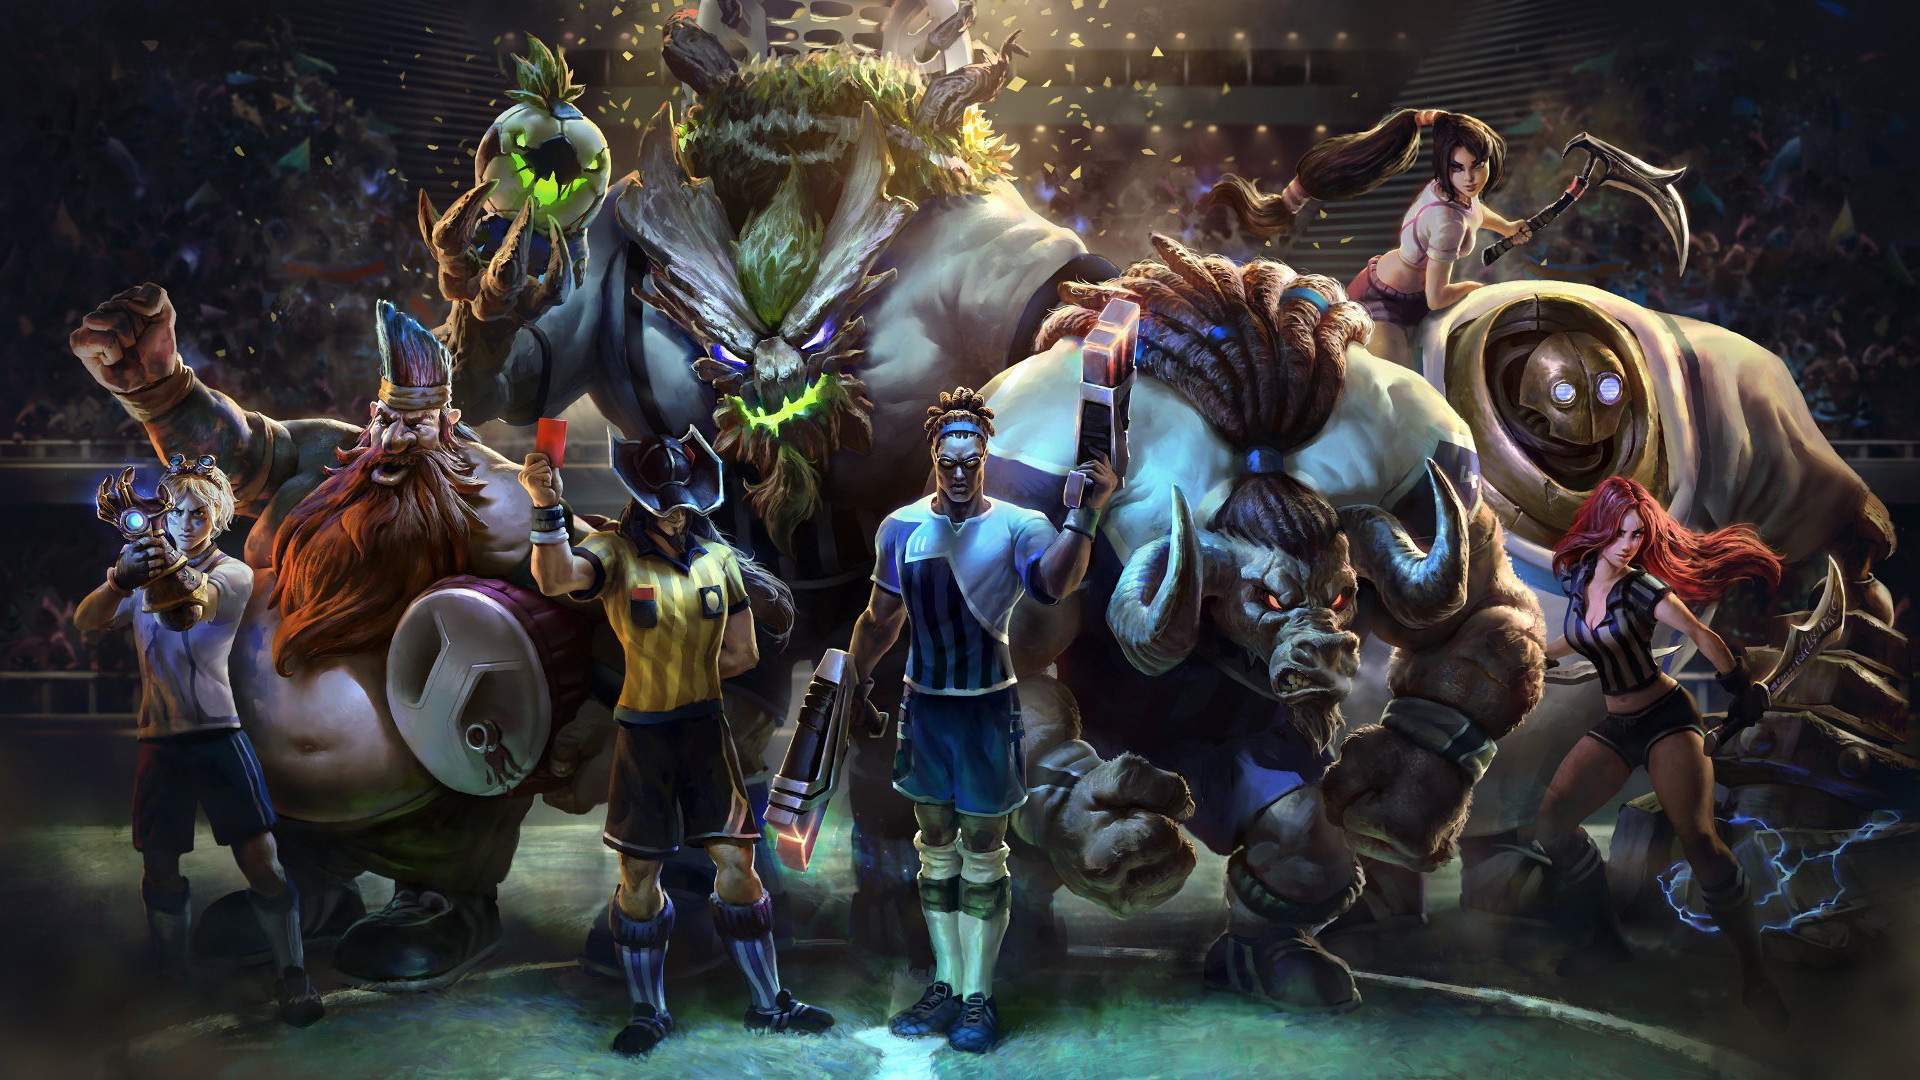 15 Gragas (League Of Legends) HD Wallpapers | Backgrounds – Wallpaper Abyss